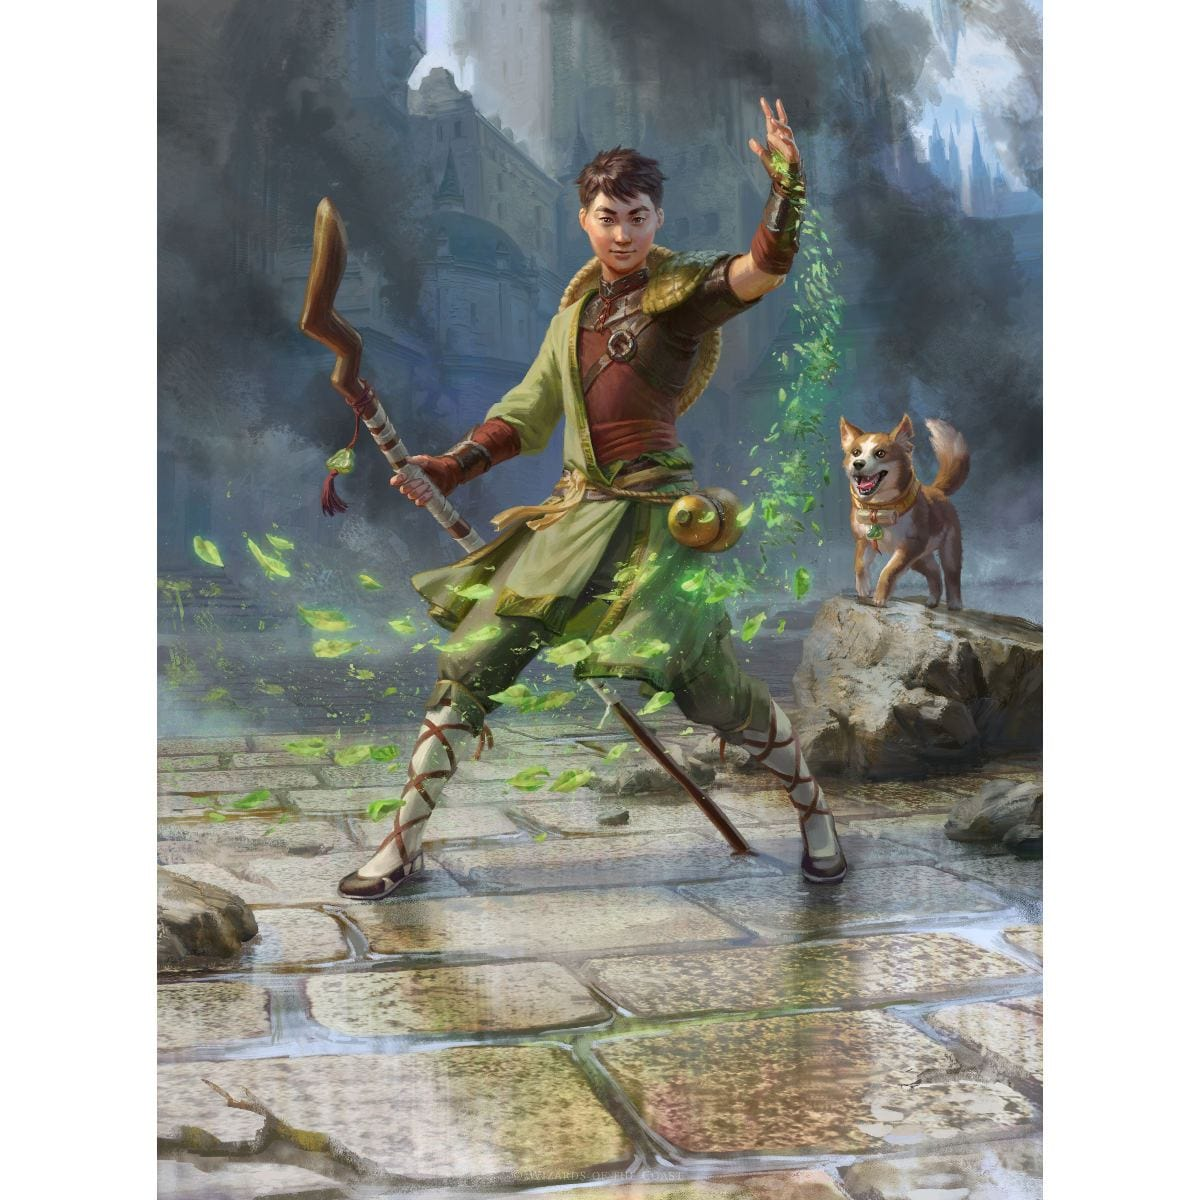 Jiang Yanggu, Wildcrafter Print - Print - Original Magic Art - Accessories for Magic the Gathering and other card games